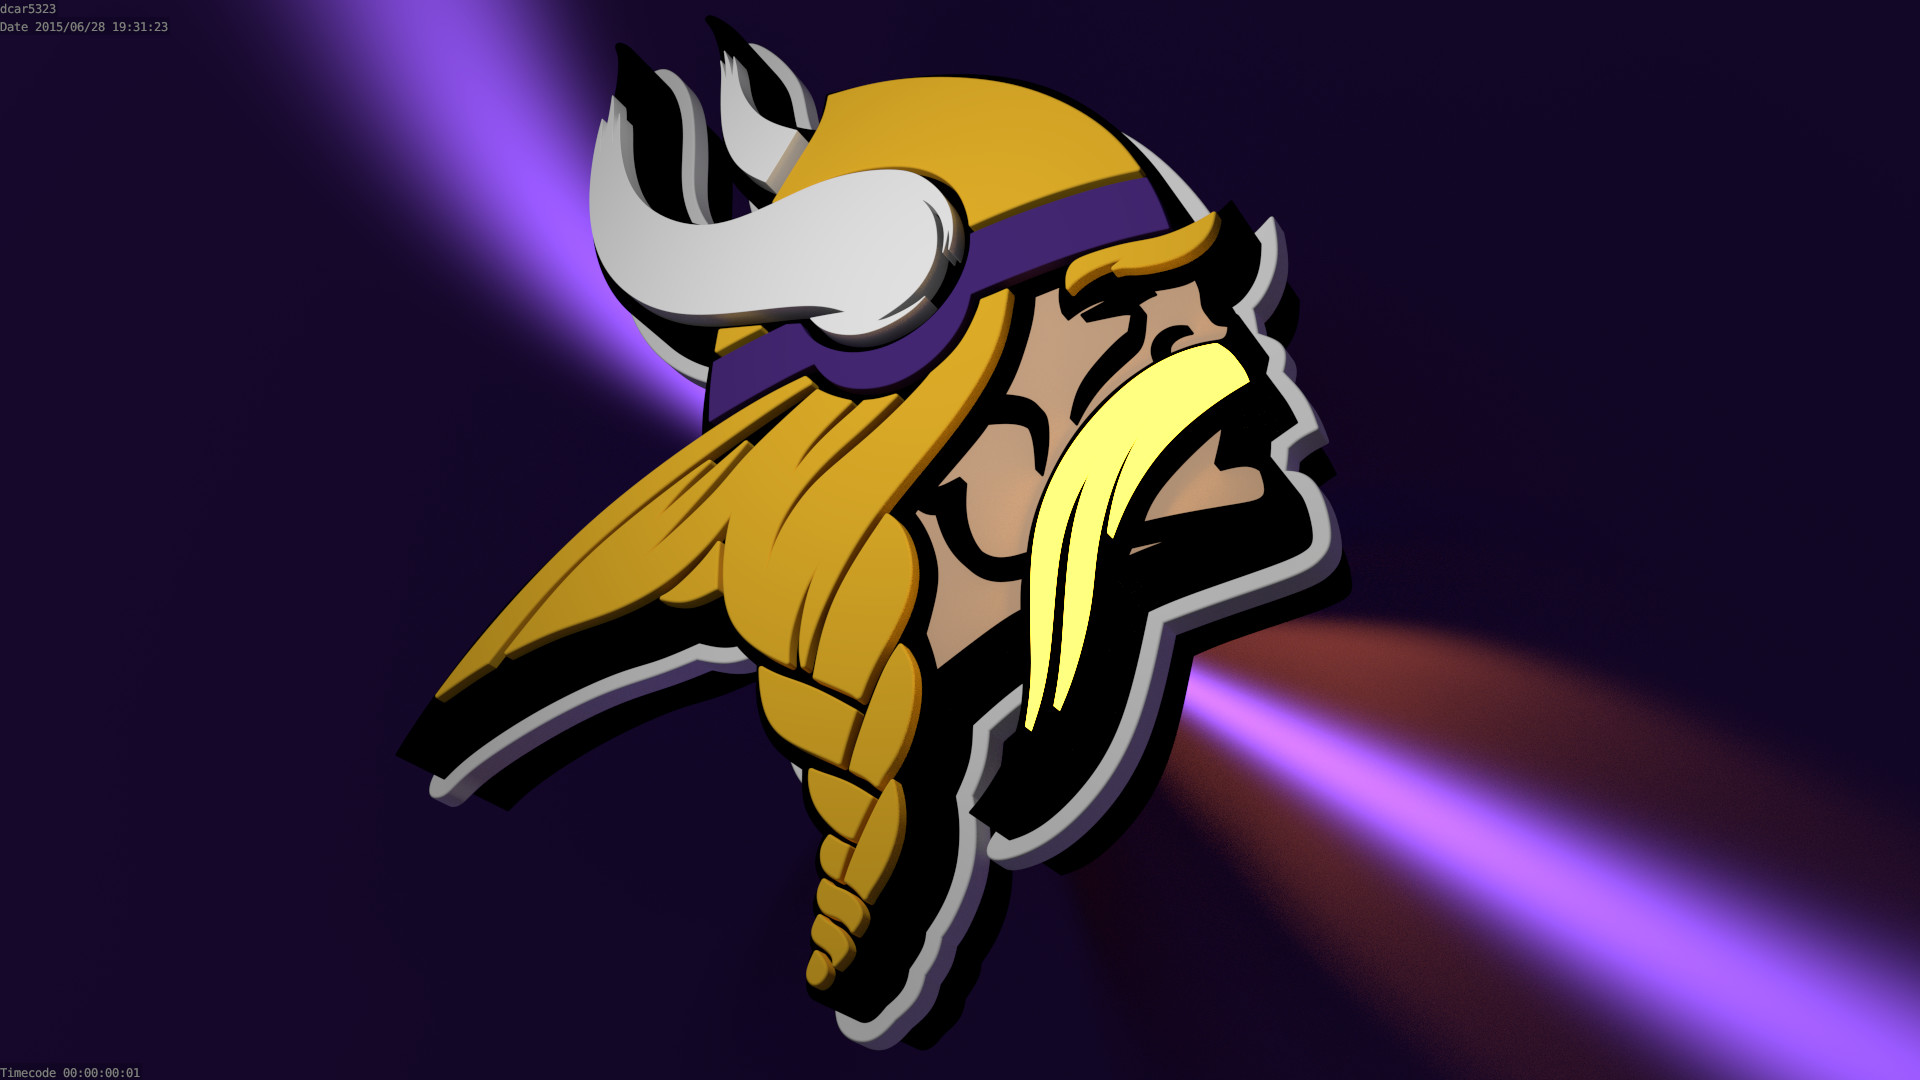 1920x1080 I'm learning how to 3D Model, so I'm recreating NFL logos as practice.  Here's the Vikings logo!